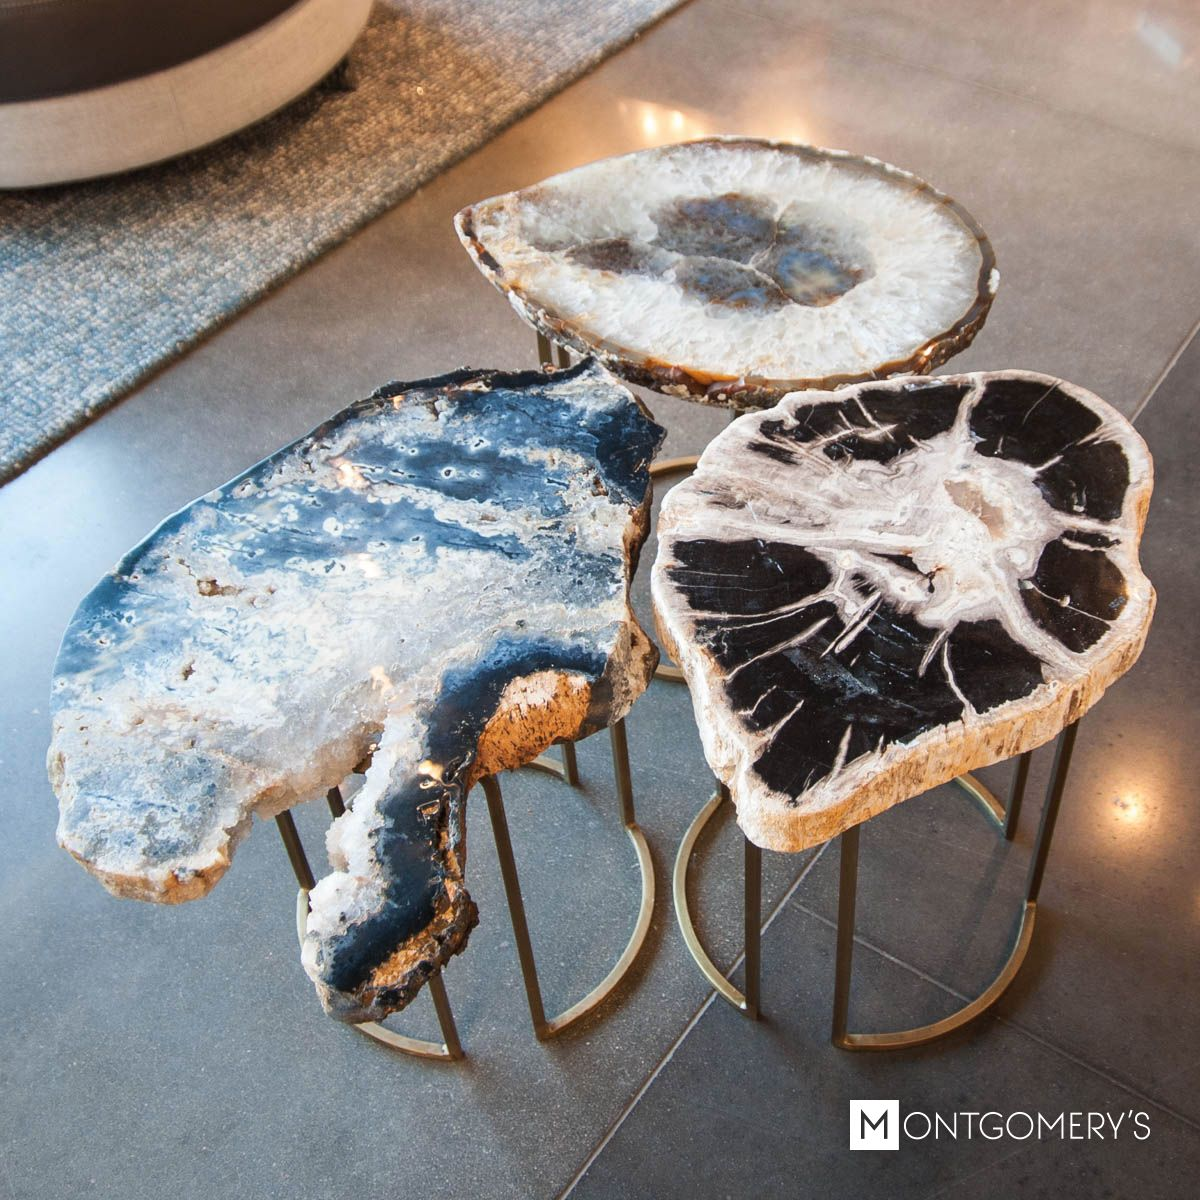 One Of A Kind Agate And Geode Accent Tables Available At Montgomery S In Sioux Falls Madison Or Watertown South Dakota